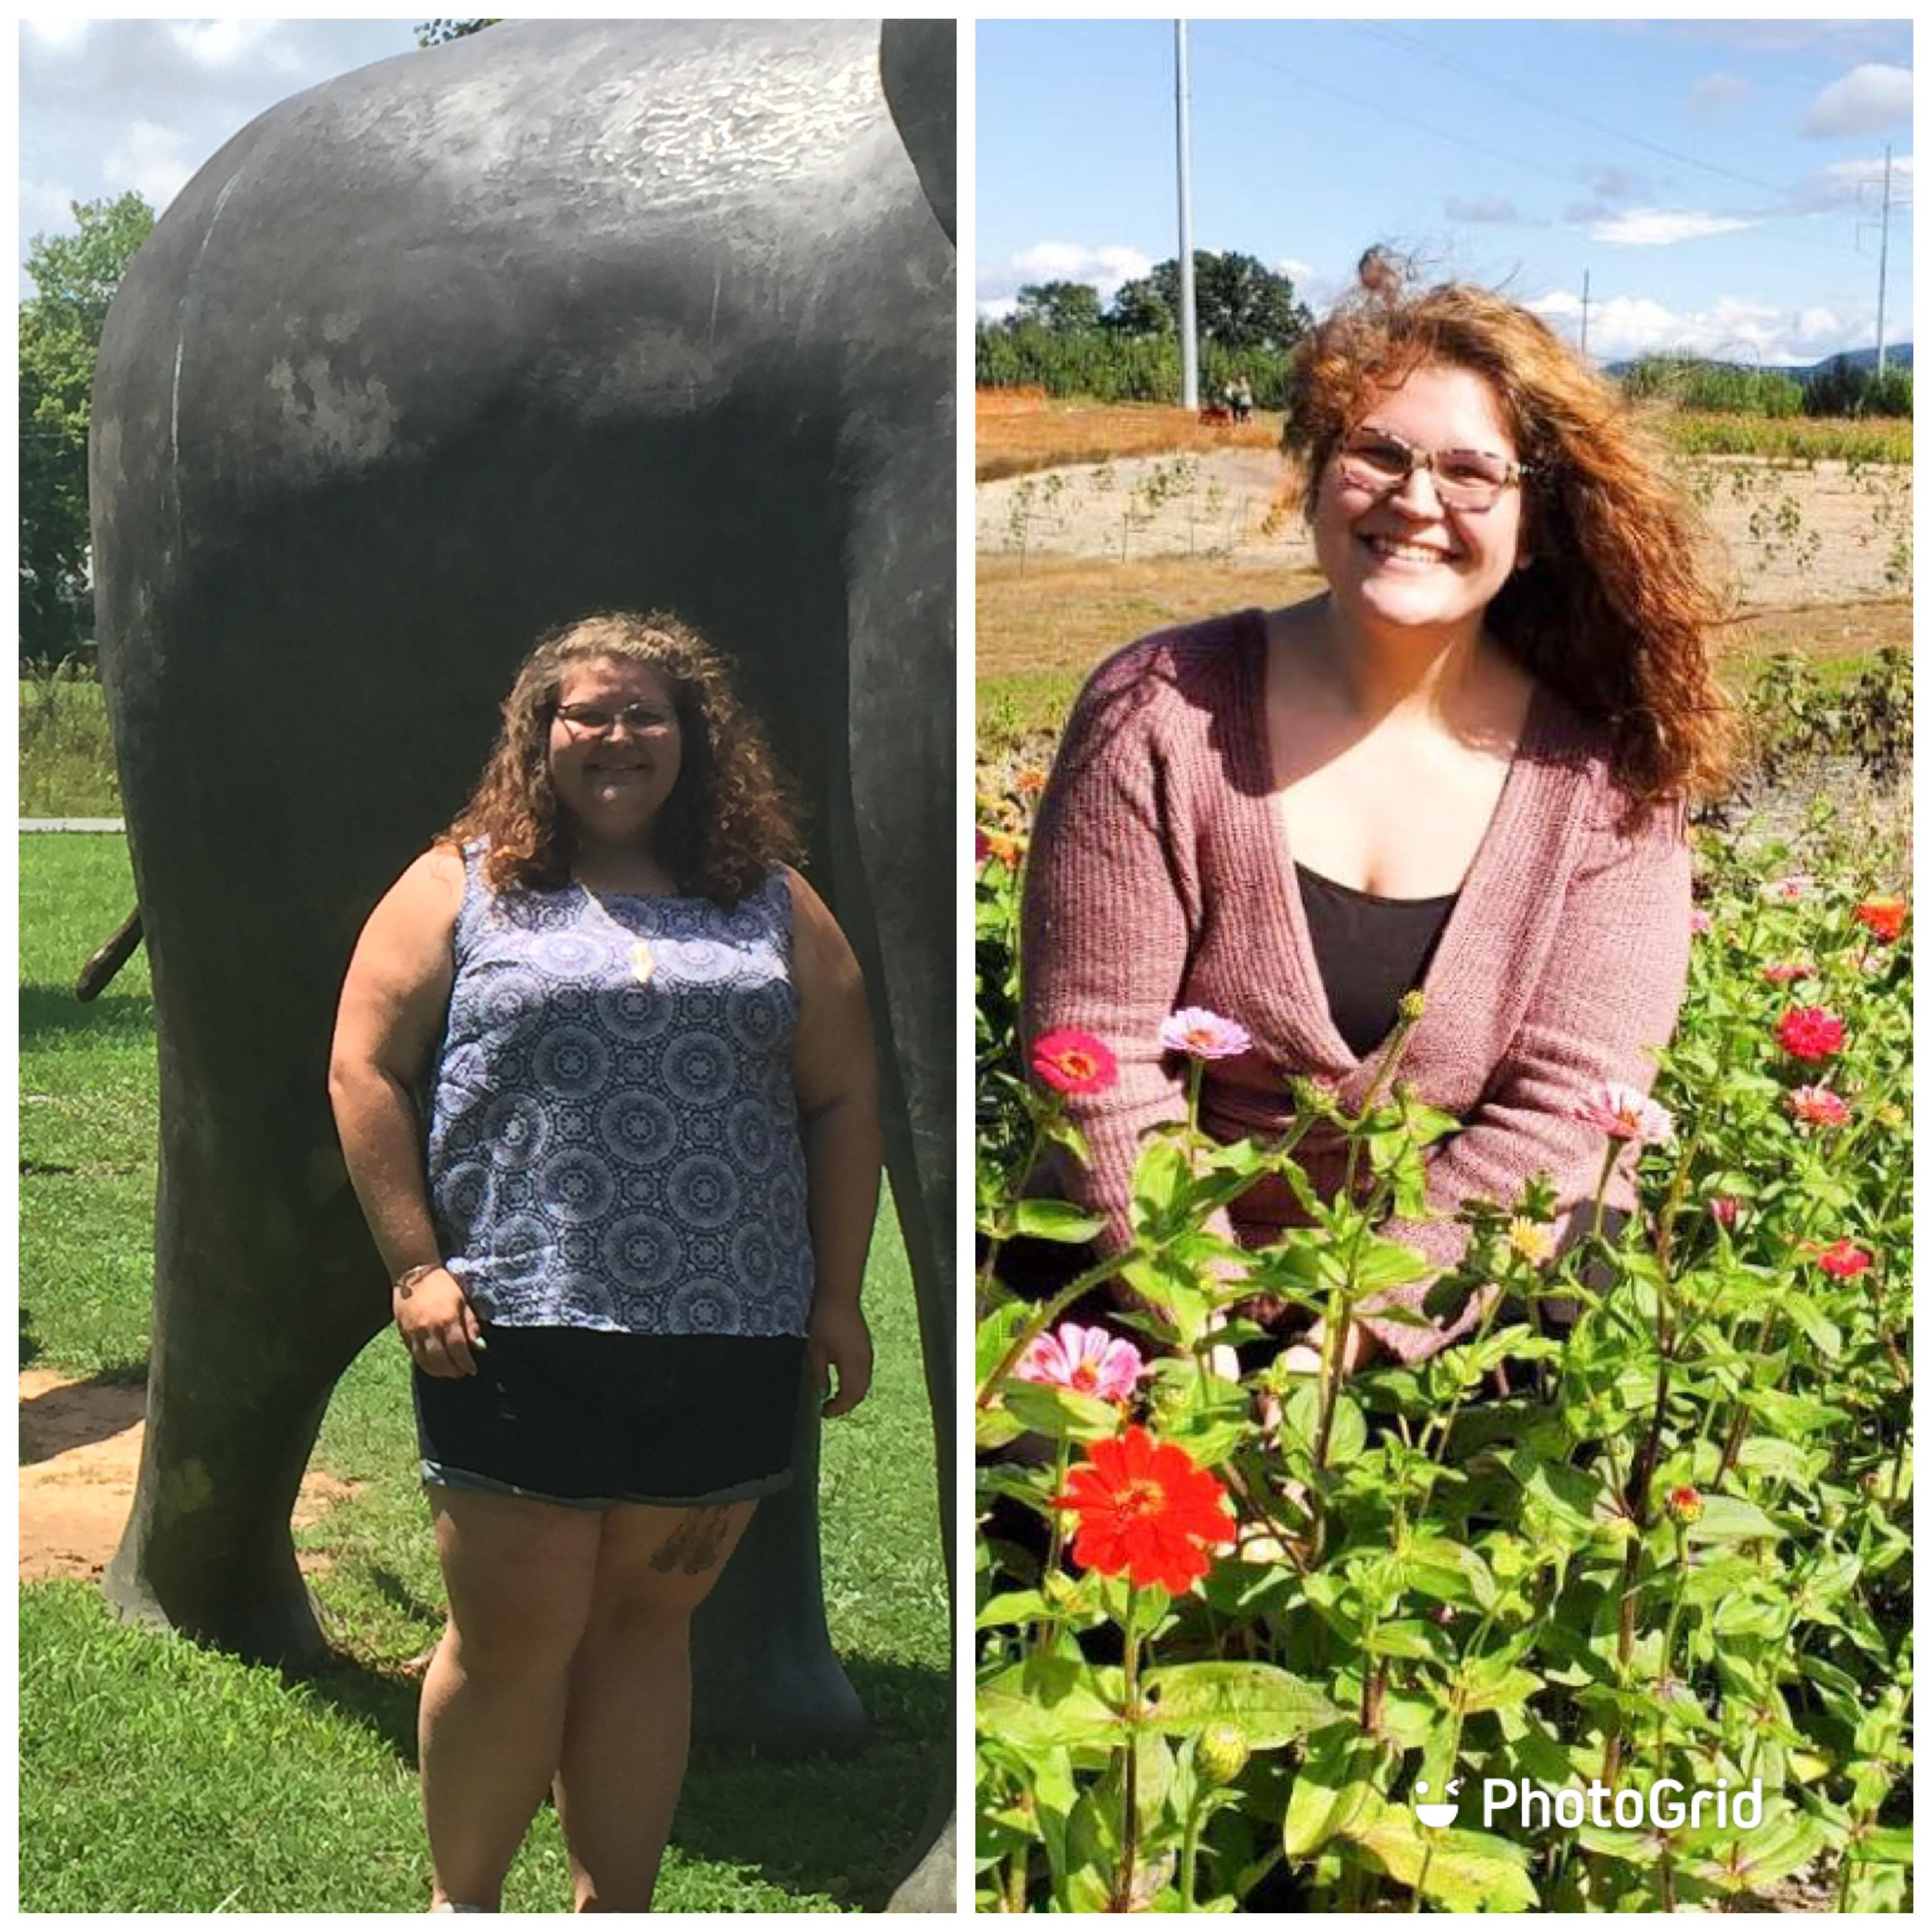 132 lbs Weight Loss 5 foot 10 Female 400 lbs to 268 lbs